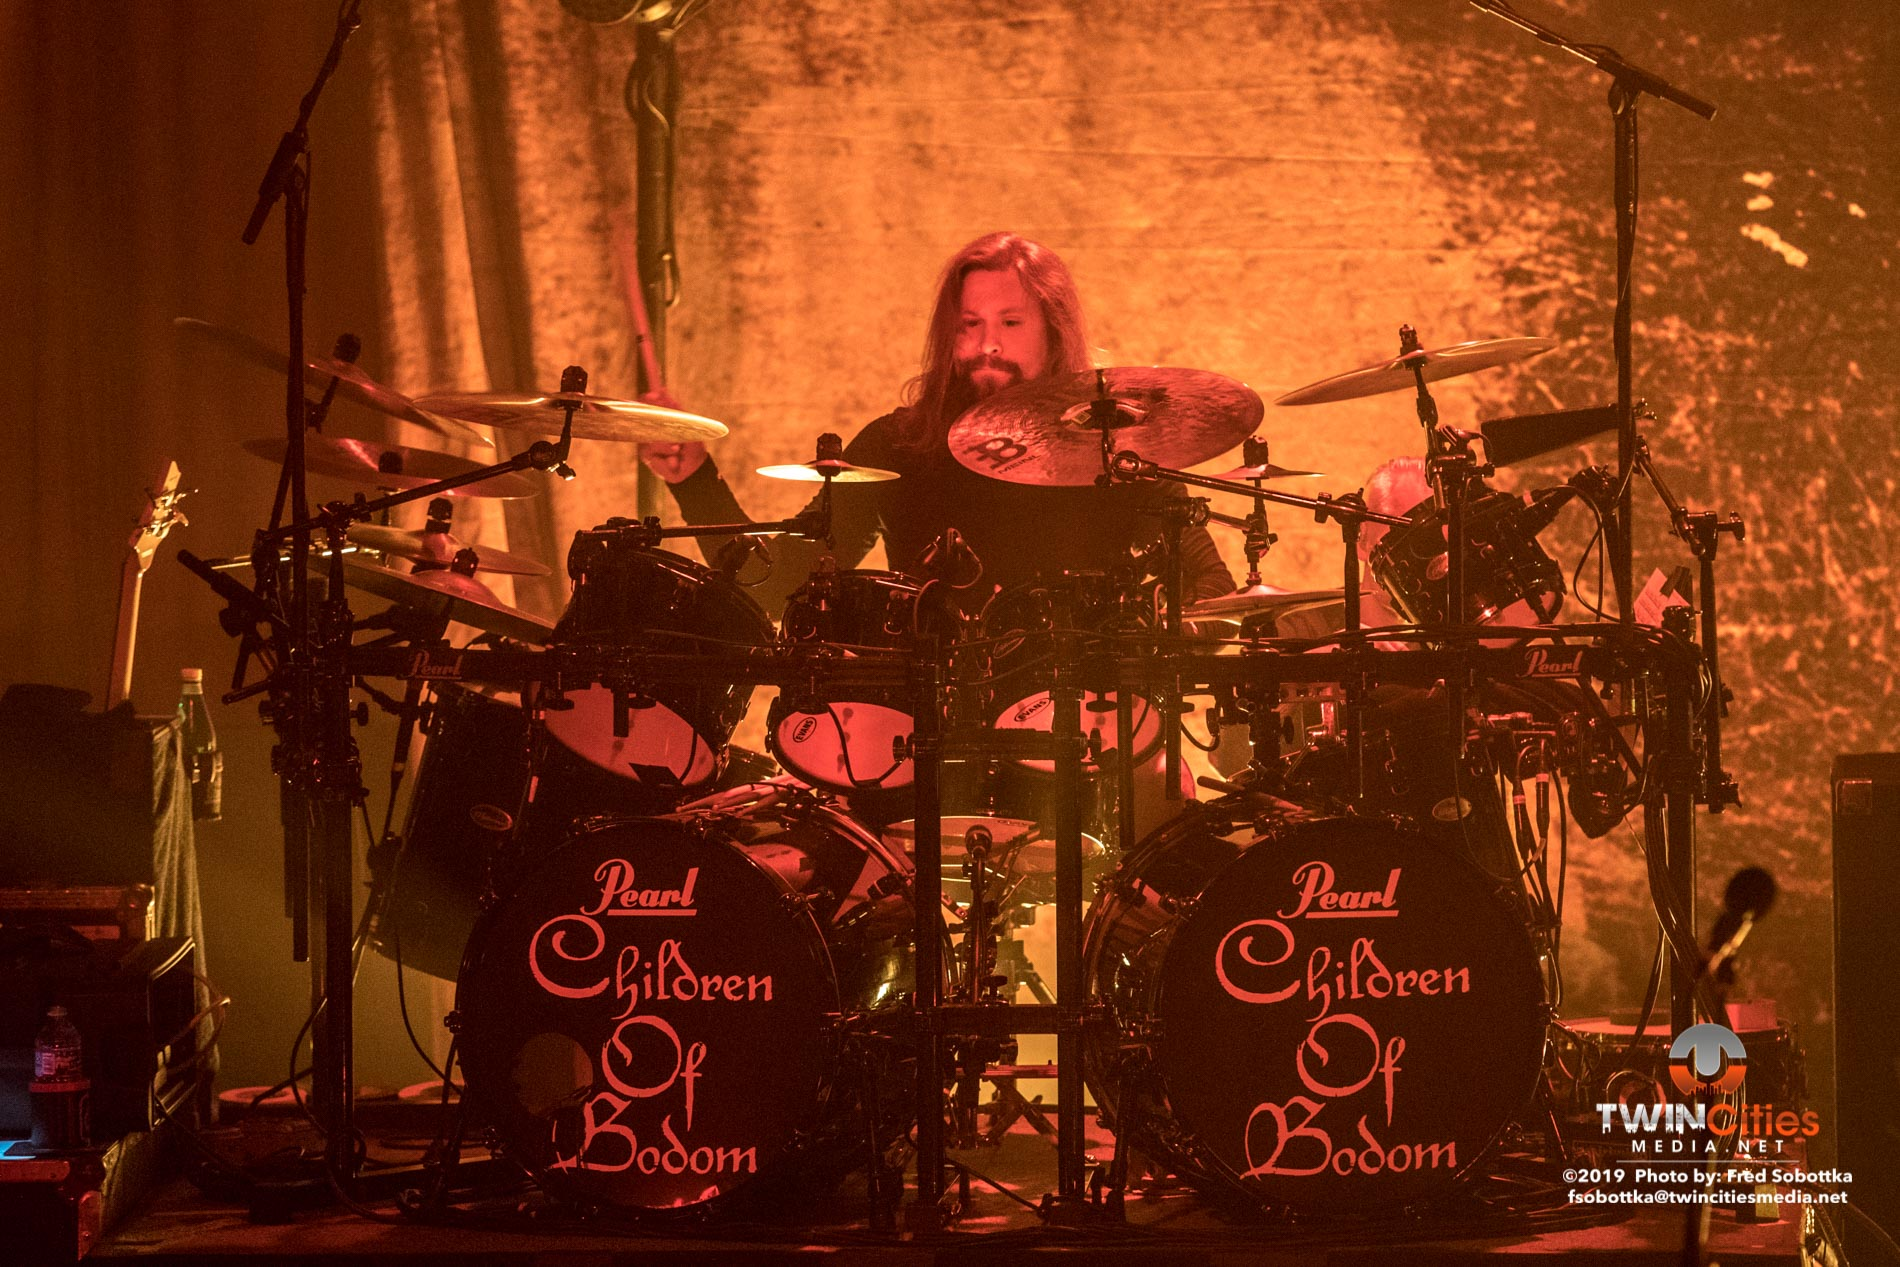 Children-of-Bodom-13